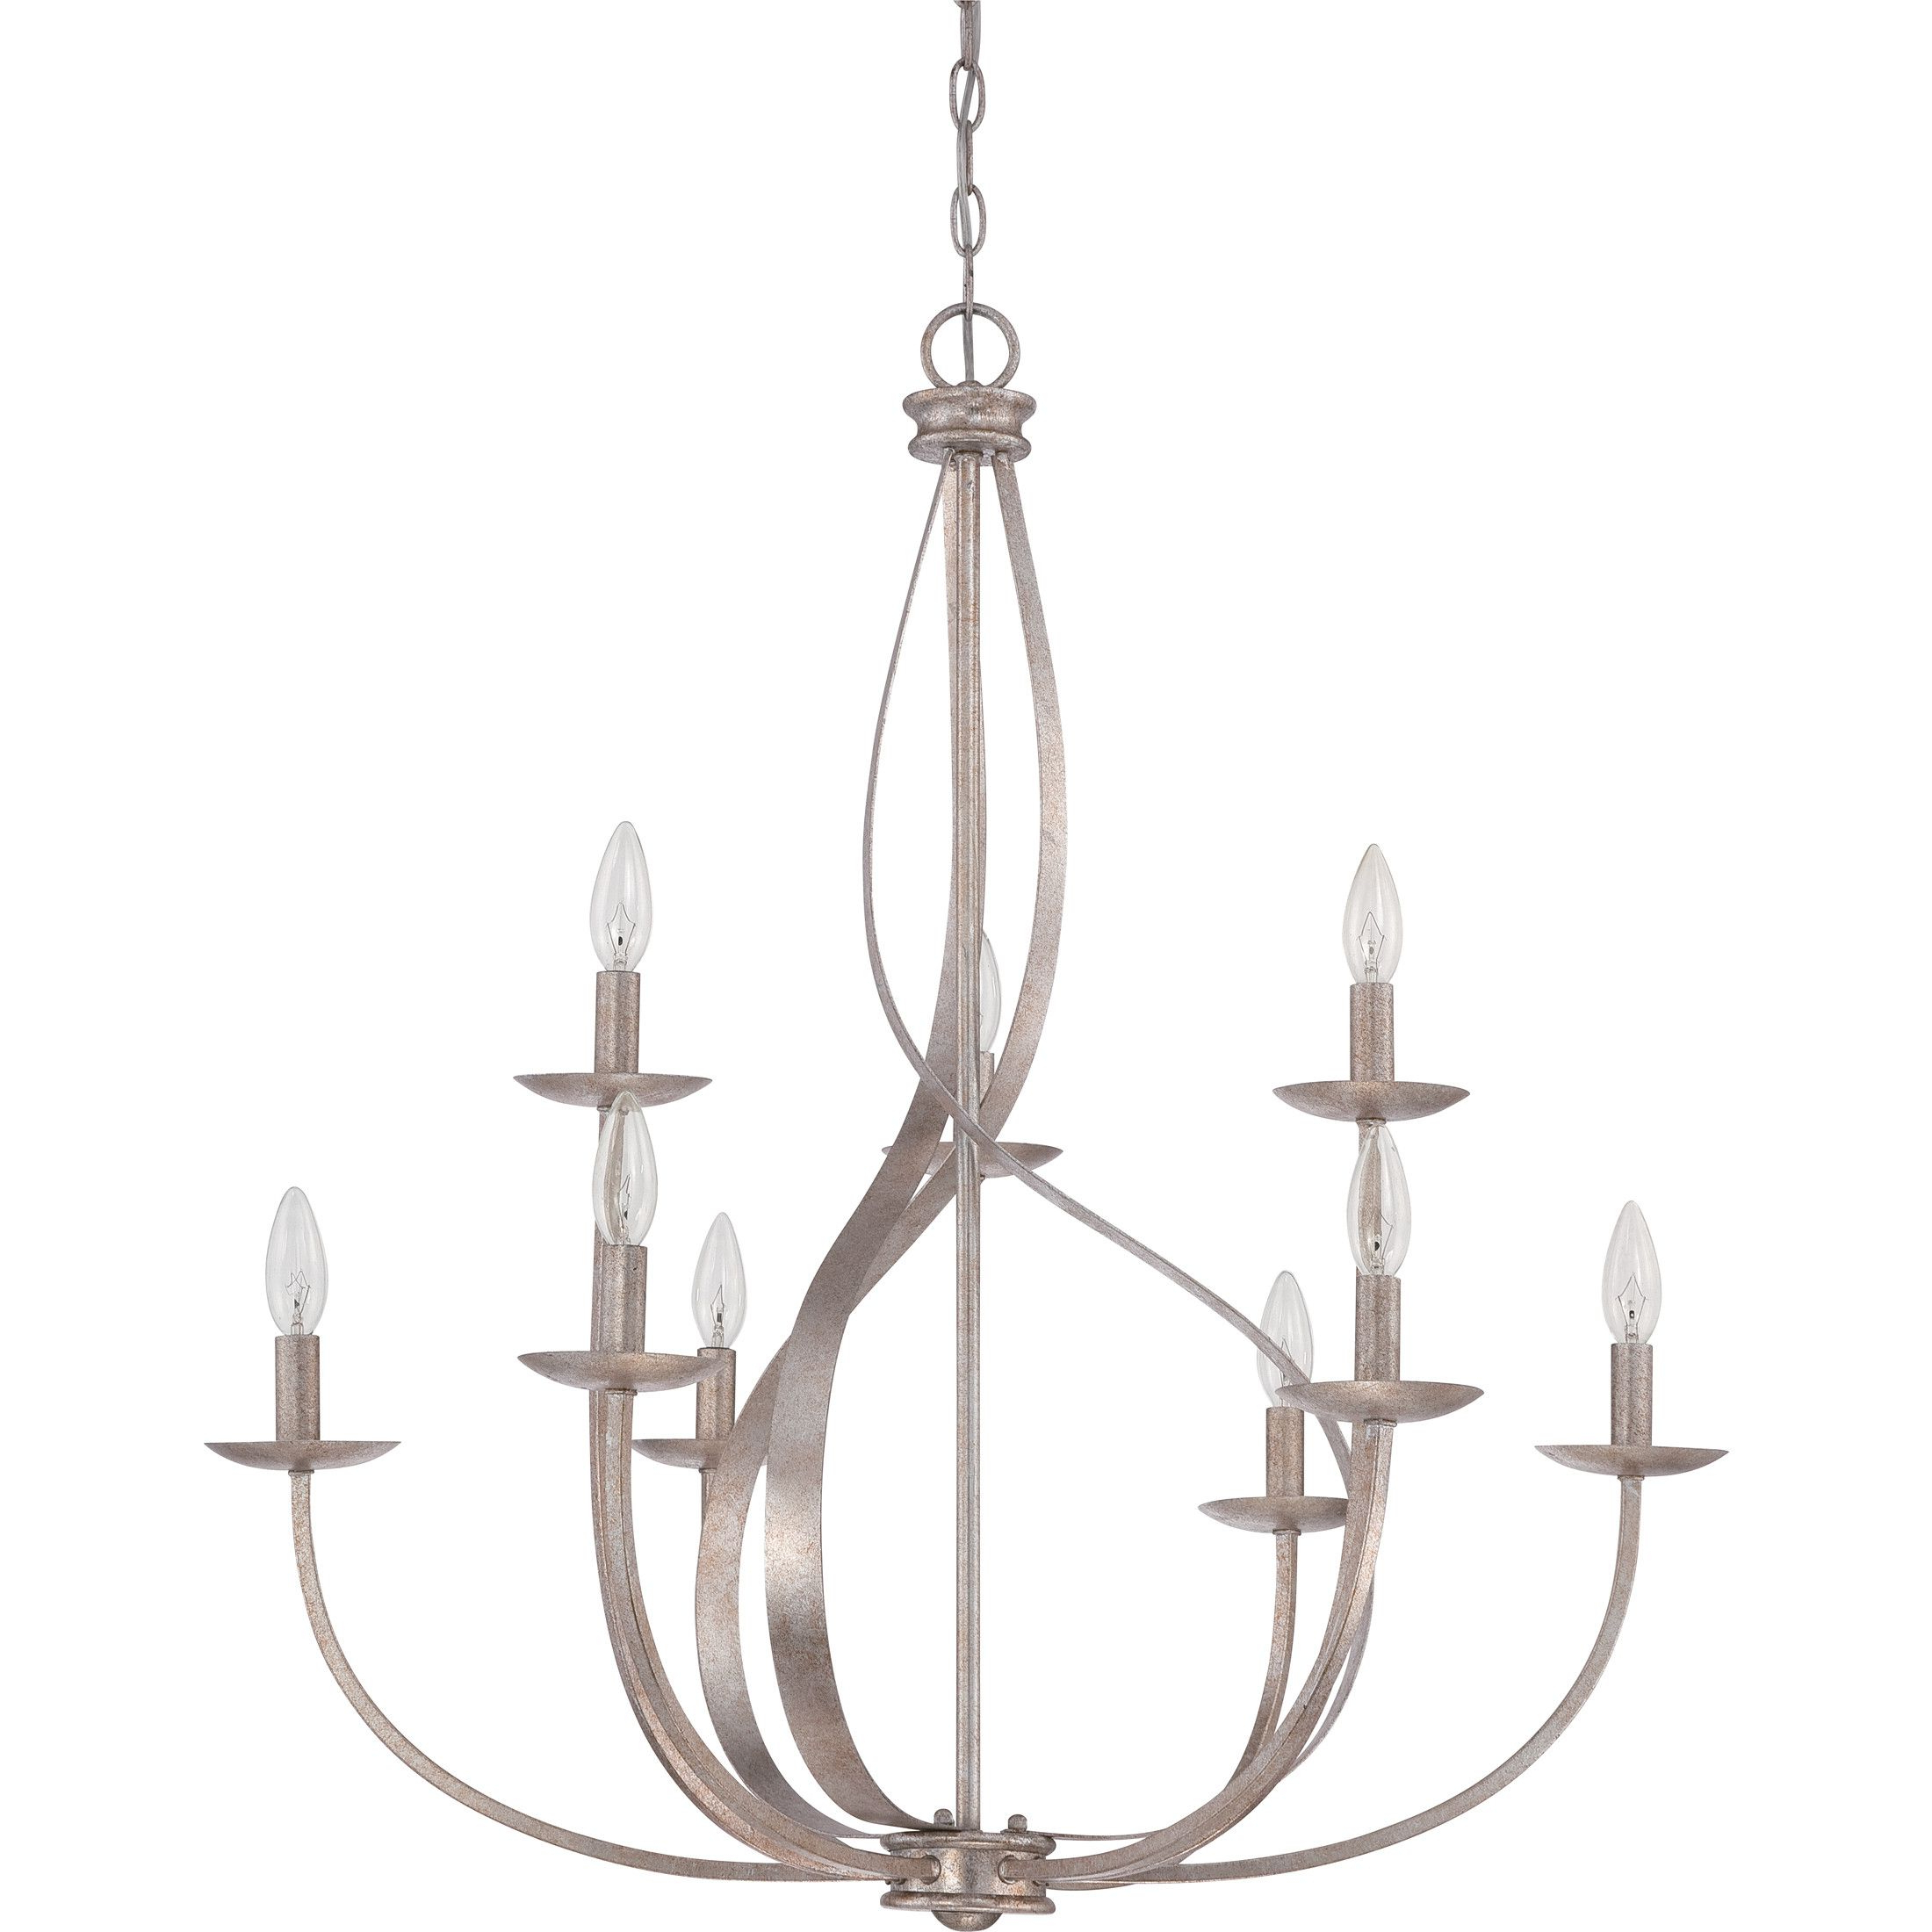 Current Lark Manor™ Emely 9 Light Candle Style Chandelier (View 6 of 20)